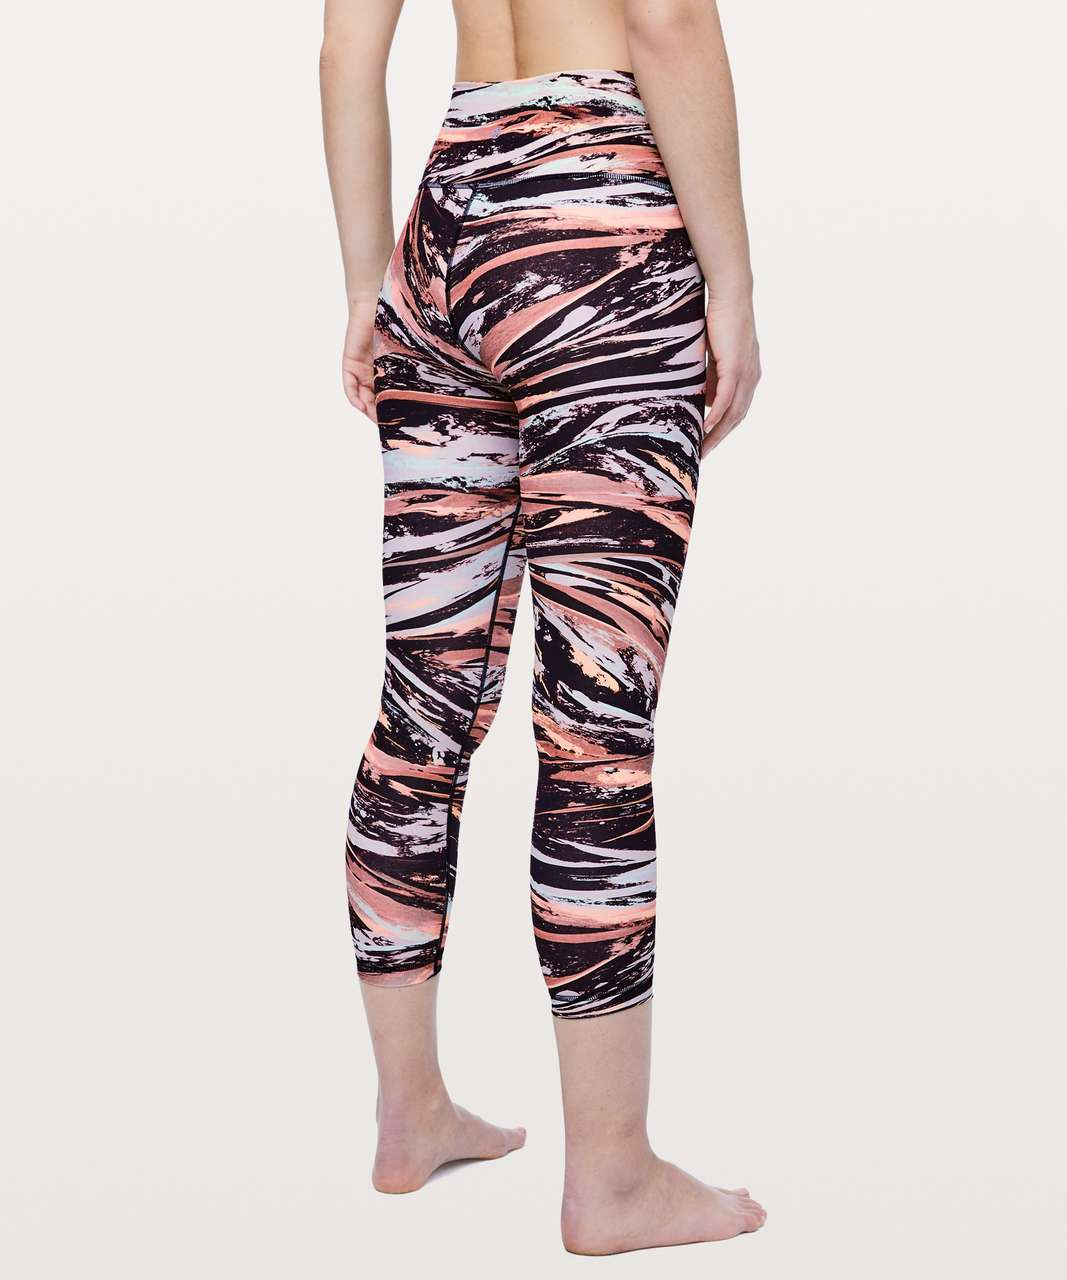 "Lululemon Wunder Under High-Rise 7/8 Tight *Full-On Luxtreme 25"" - Colour Splash Multi"